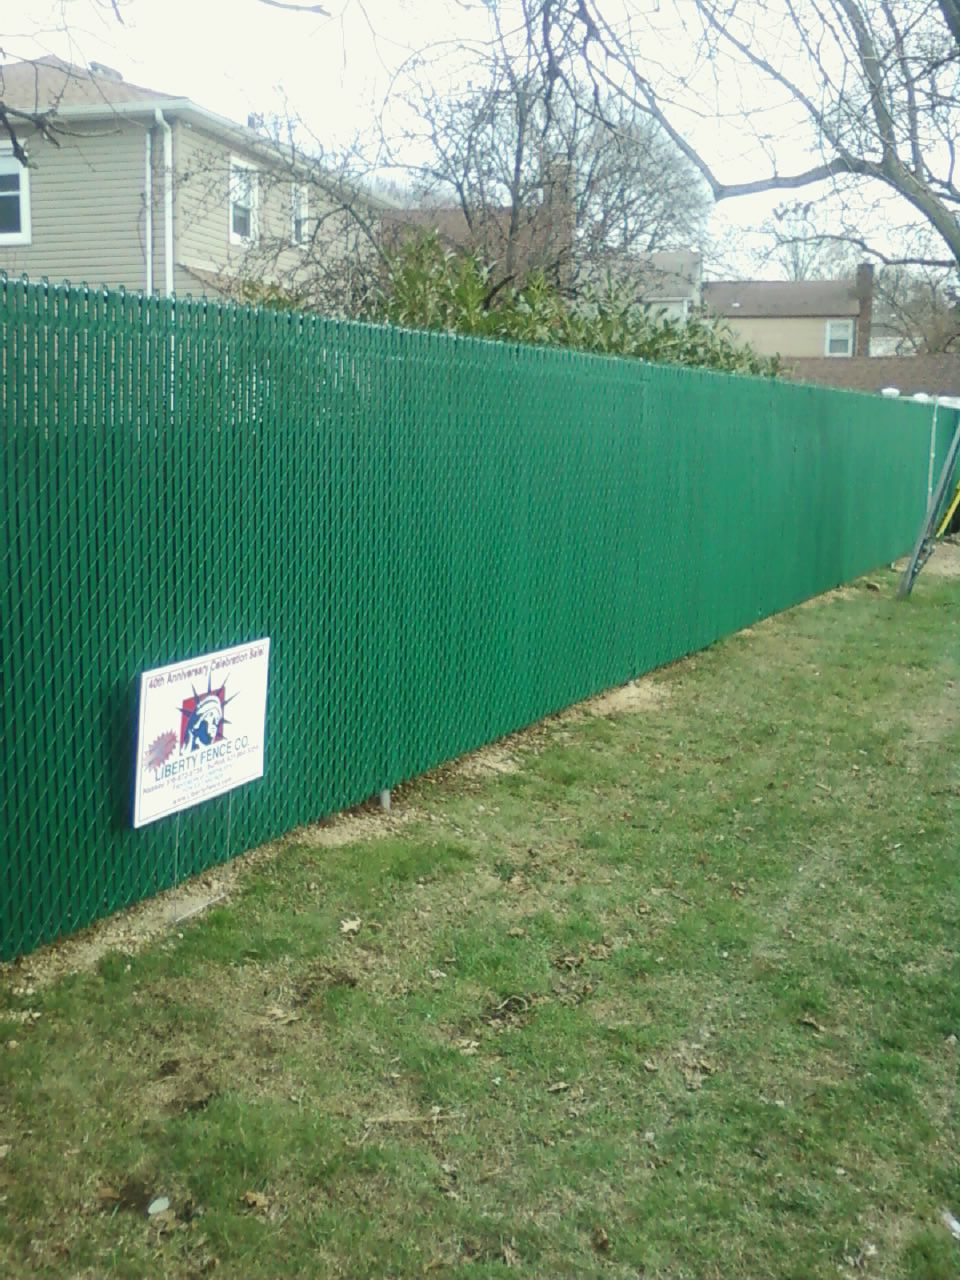 Liberty Fence Railing Installed 2 000 Feet Of 6 Ft High Green Vinyl Coated Chain Link With Pvt Privacy Slats On Tennessee Street For The